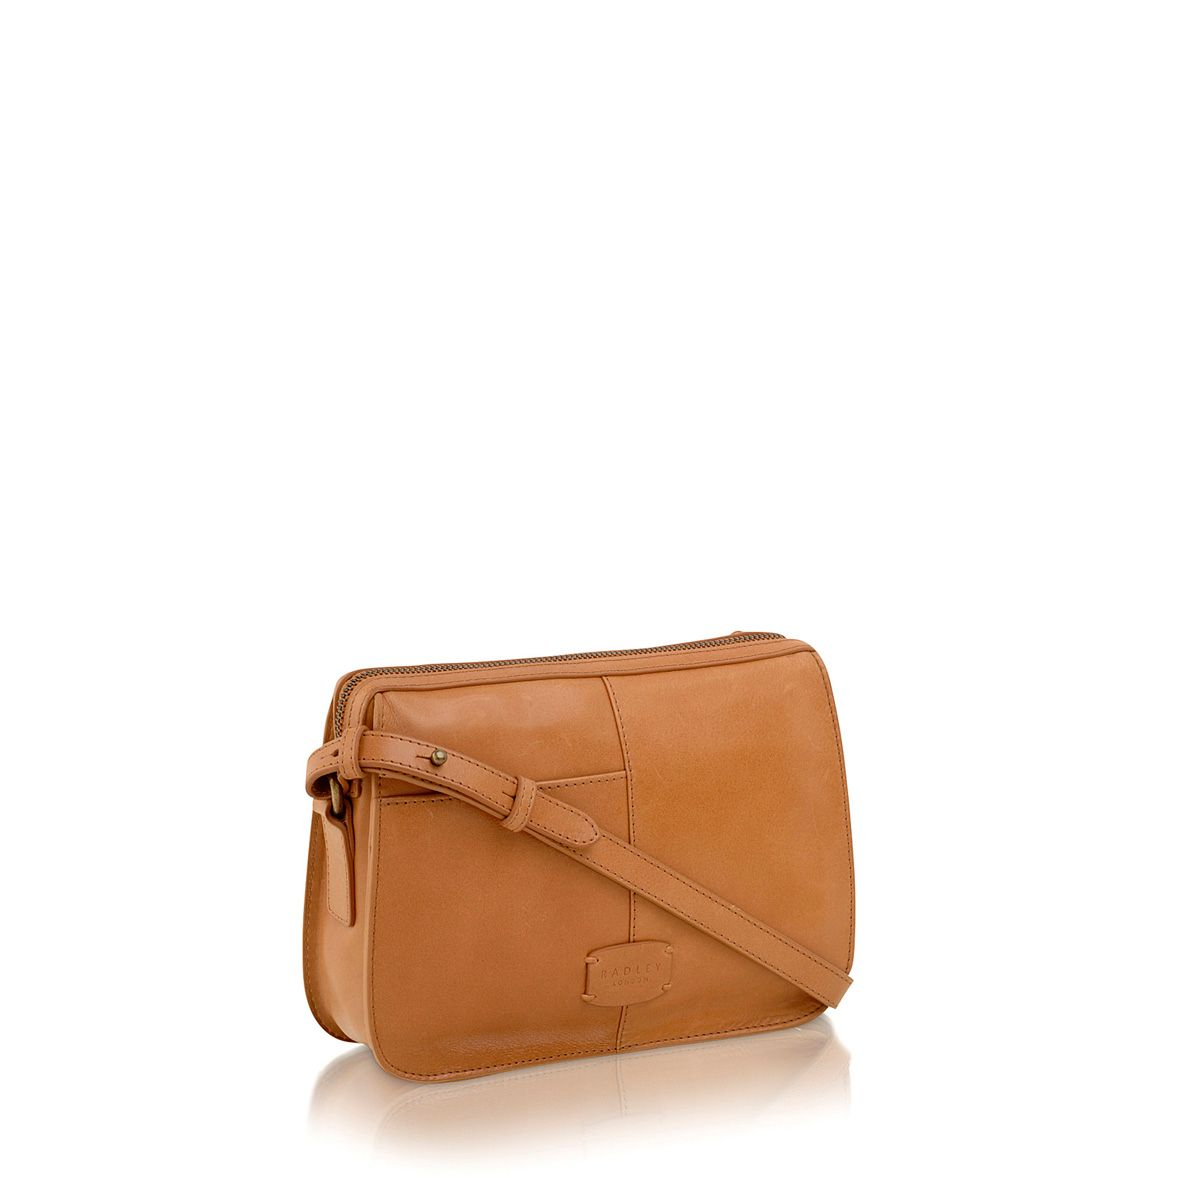 Maiden tan small leather cross body